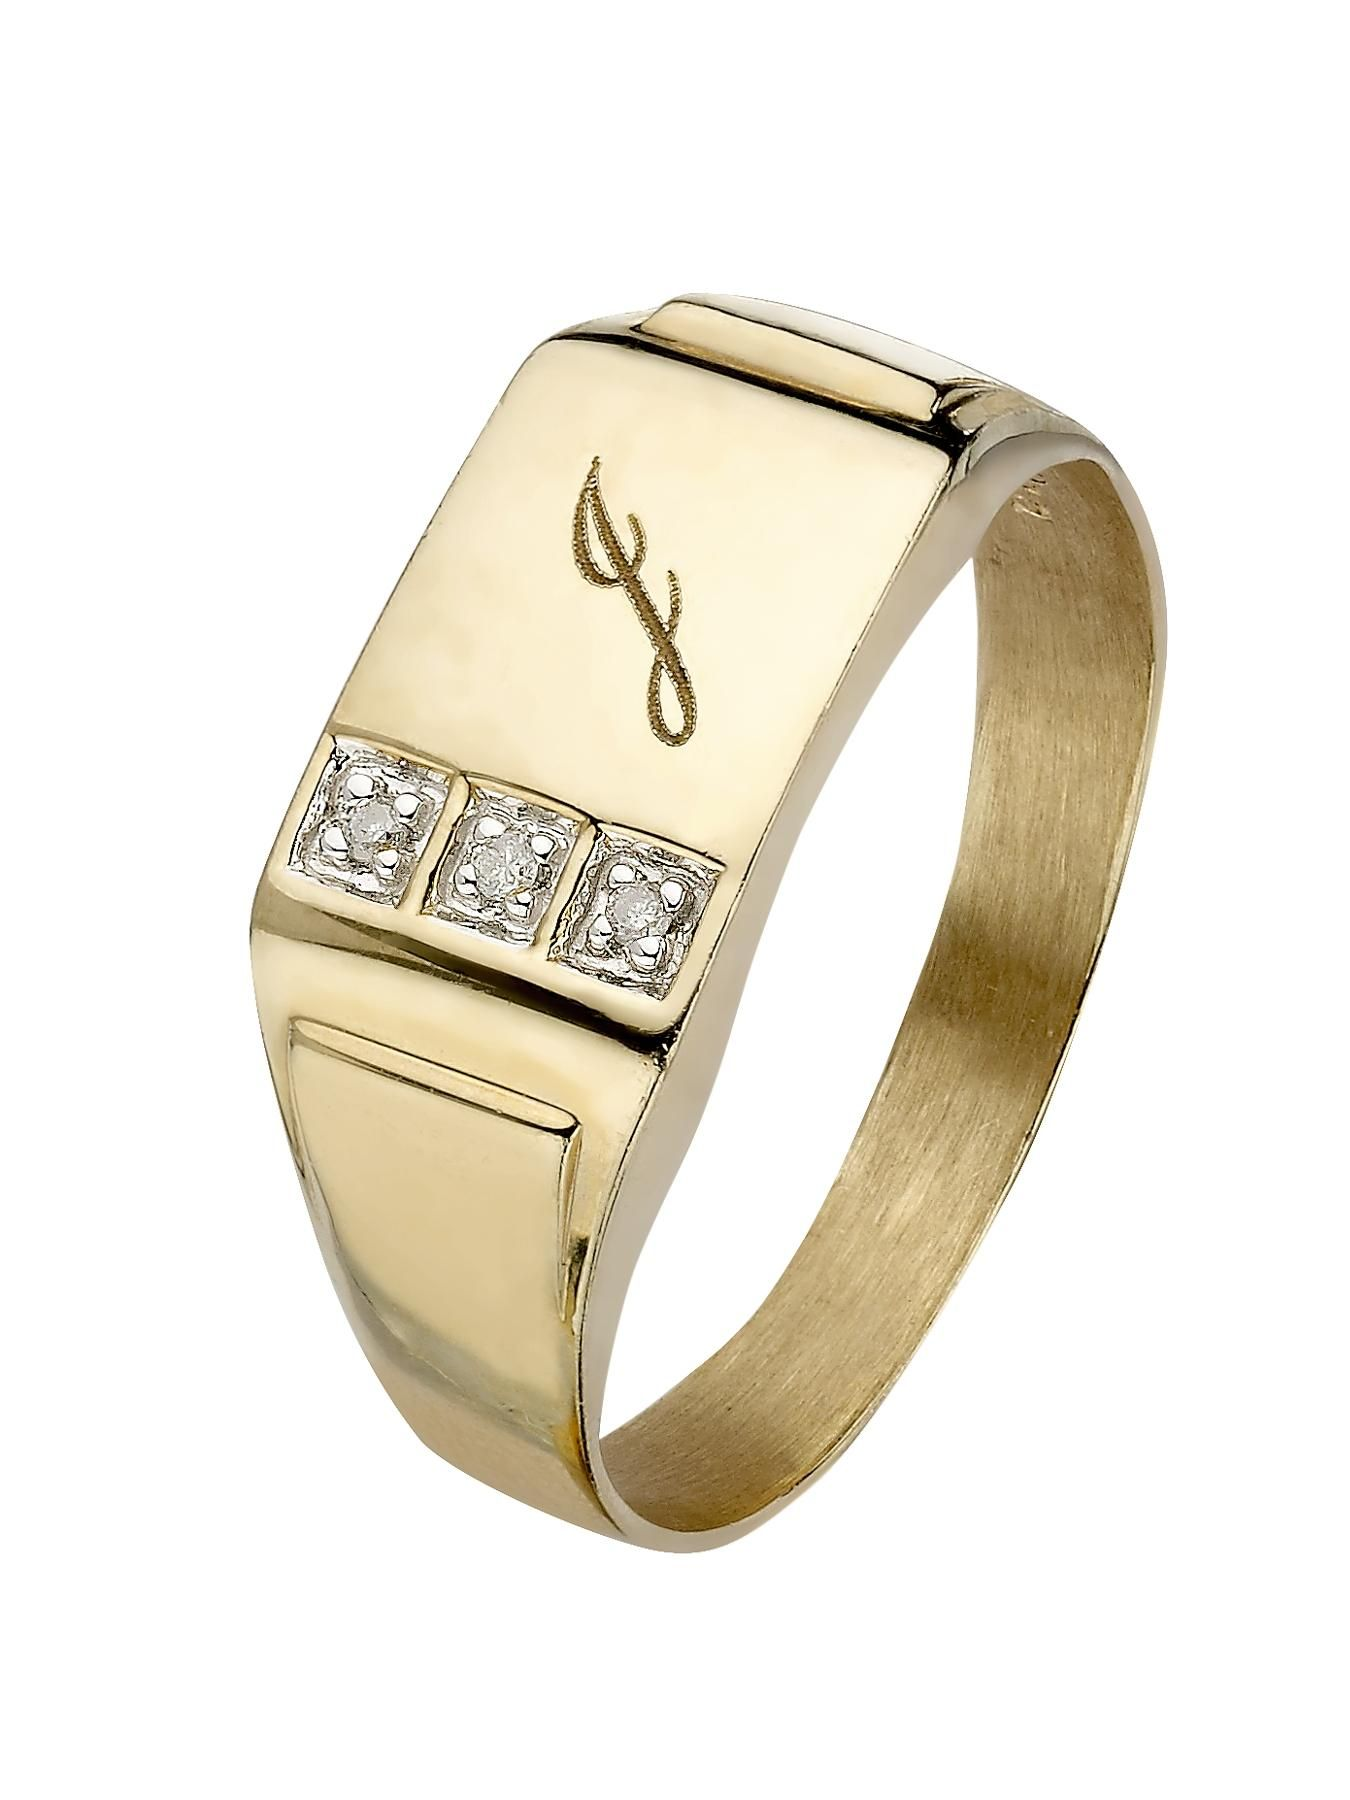 state ring by rings championship fan beverly official golden warriors of store jewellery online product hills jason gold